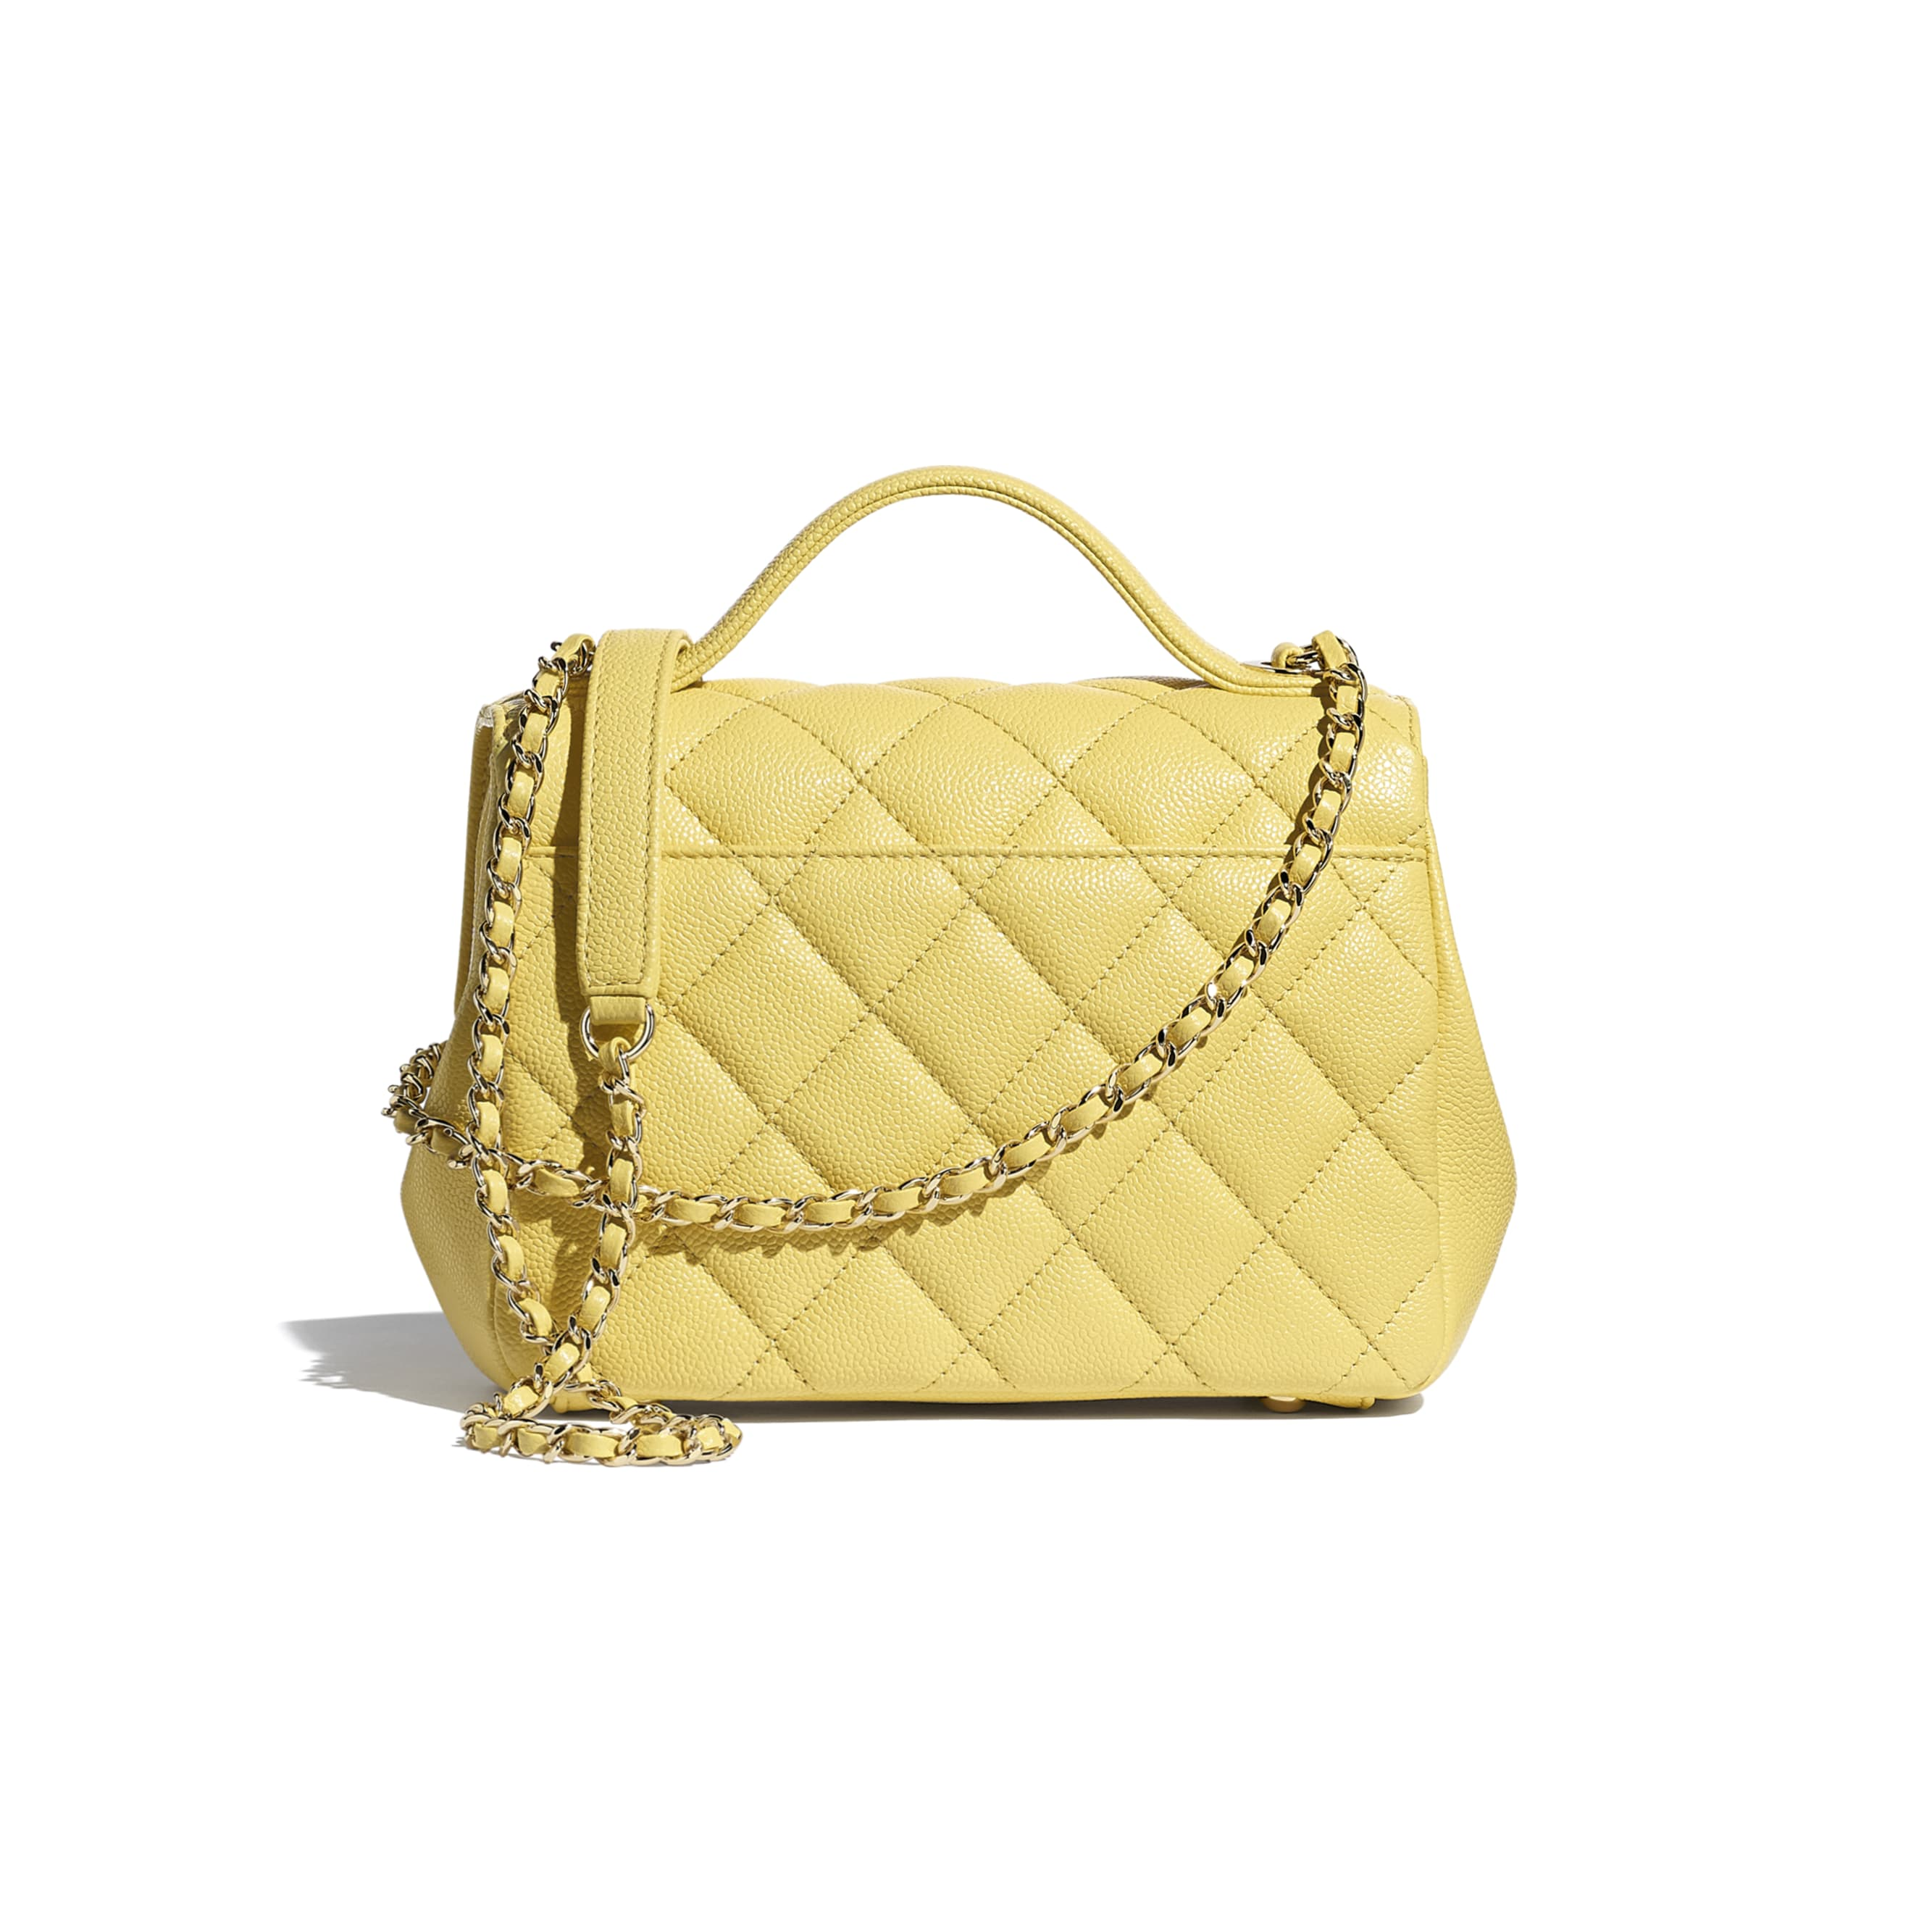 Mini Flap Bag with Handle - Yellow - Grained Calfskin & Gold-Tone Metal - CHANEL - Alternative view - see standard sized version